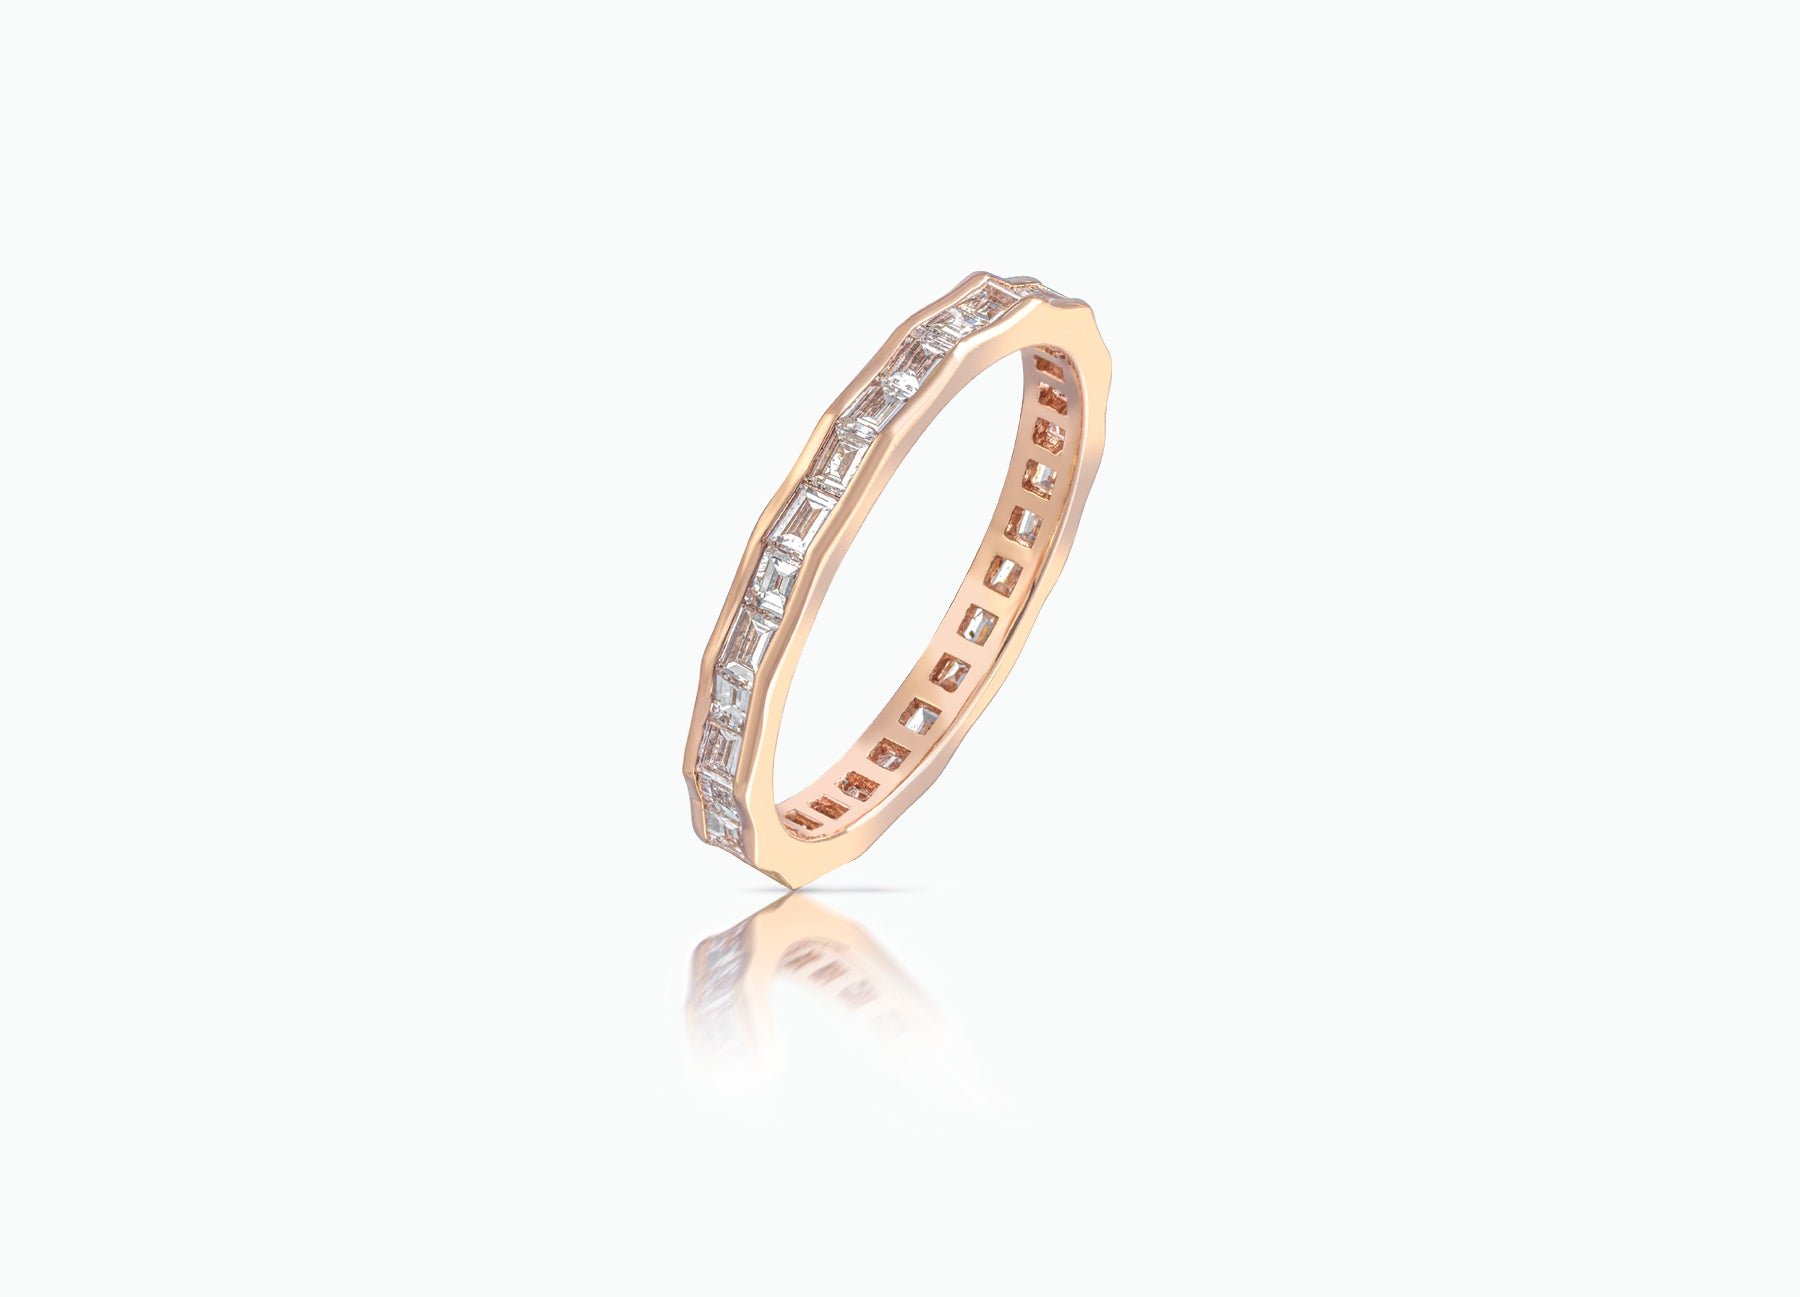 Contemporary Pleat Eternity Wedding Band by Tomasz Donocik set with baguette diamonds all around by Tomasz Donocik side view